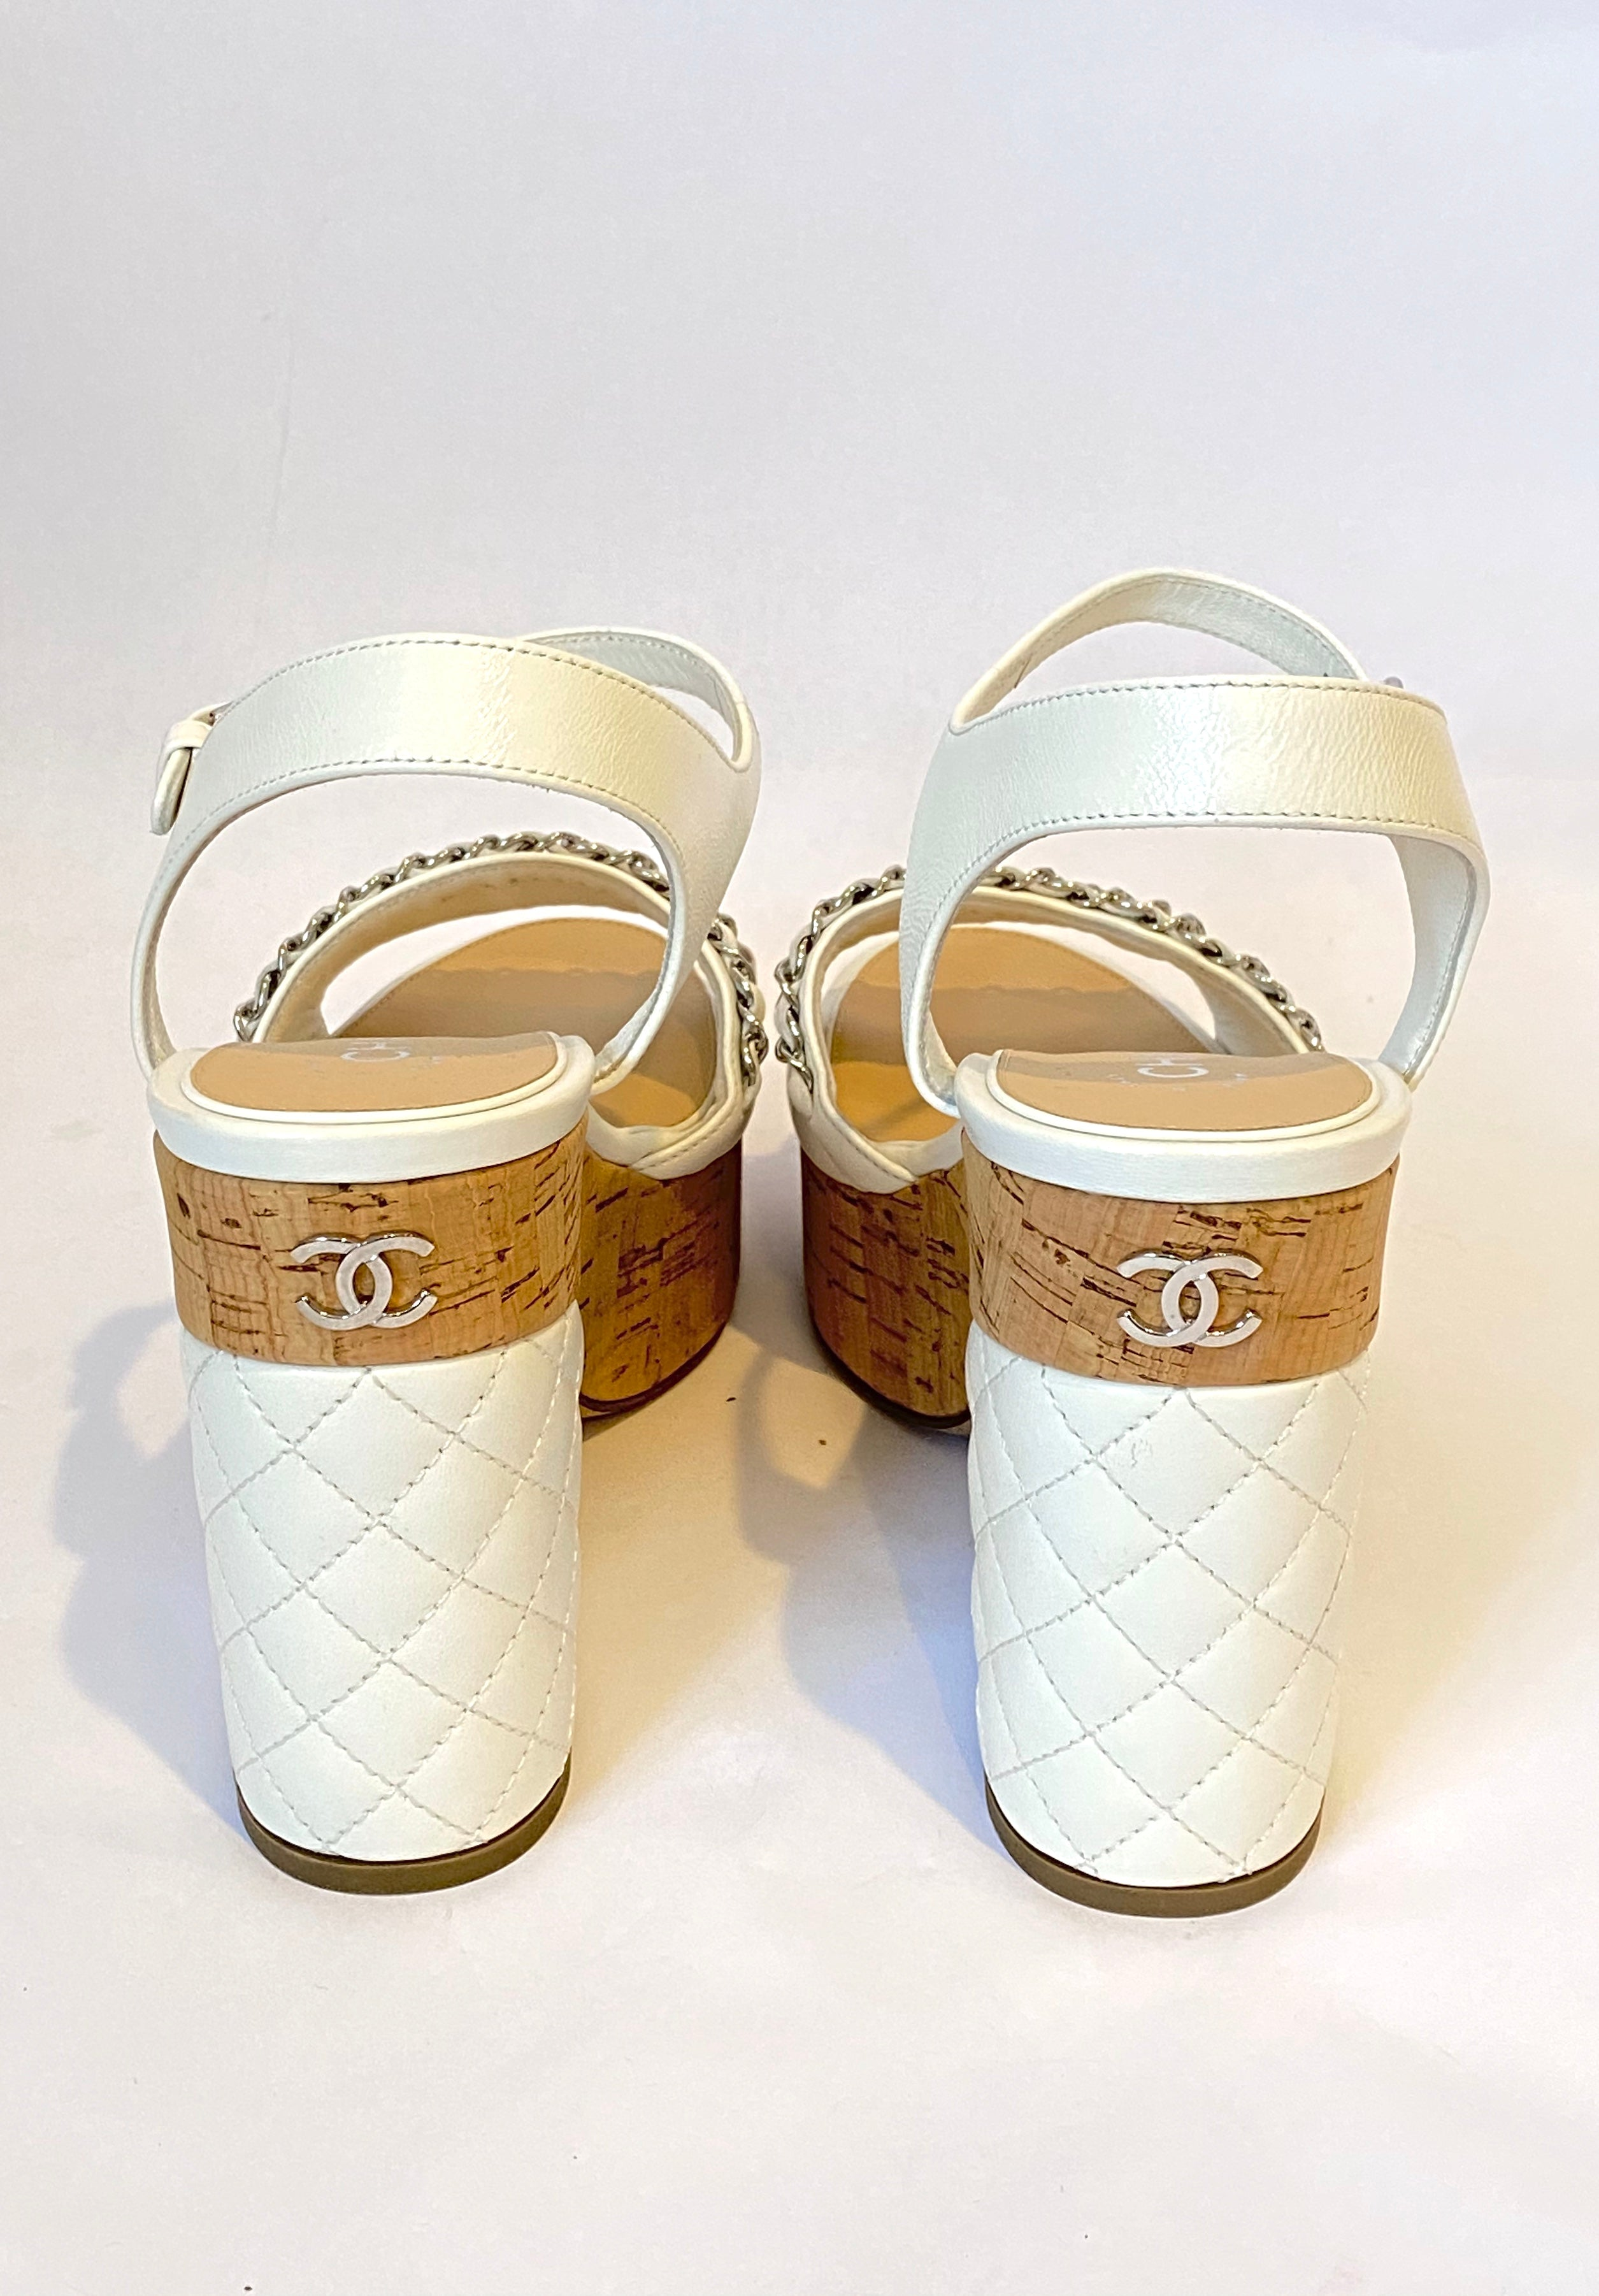 Chanel White Quilted Leather and Cork Platform Sandals with Chain Detail Size 38